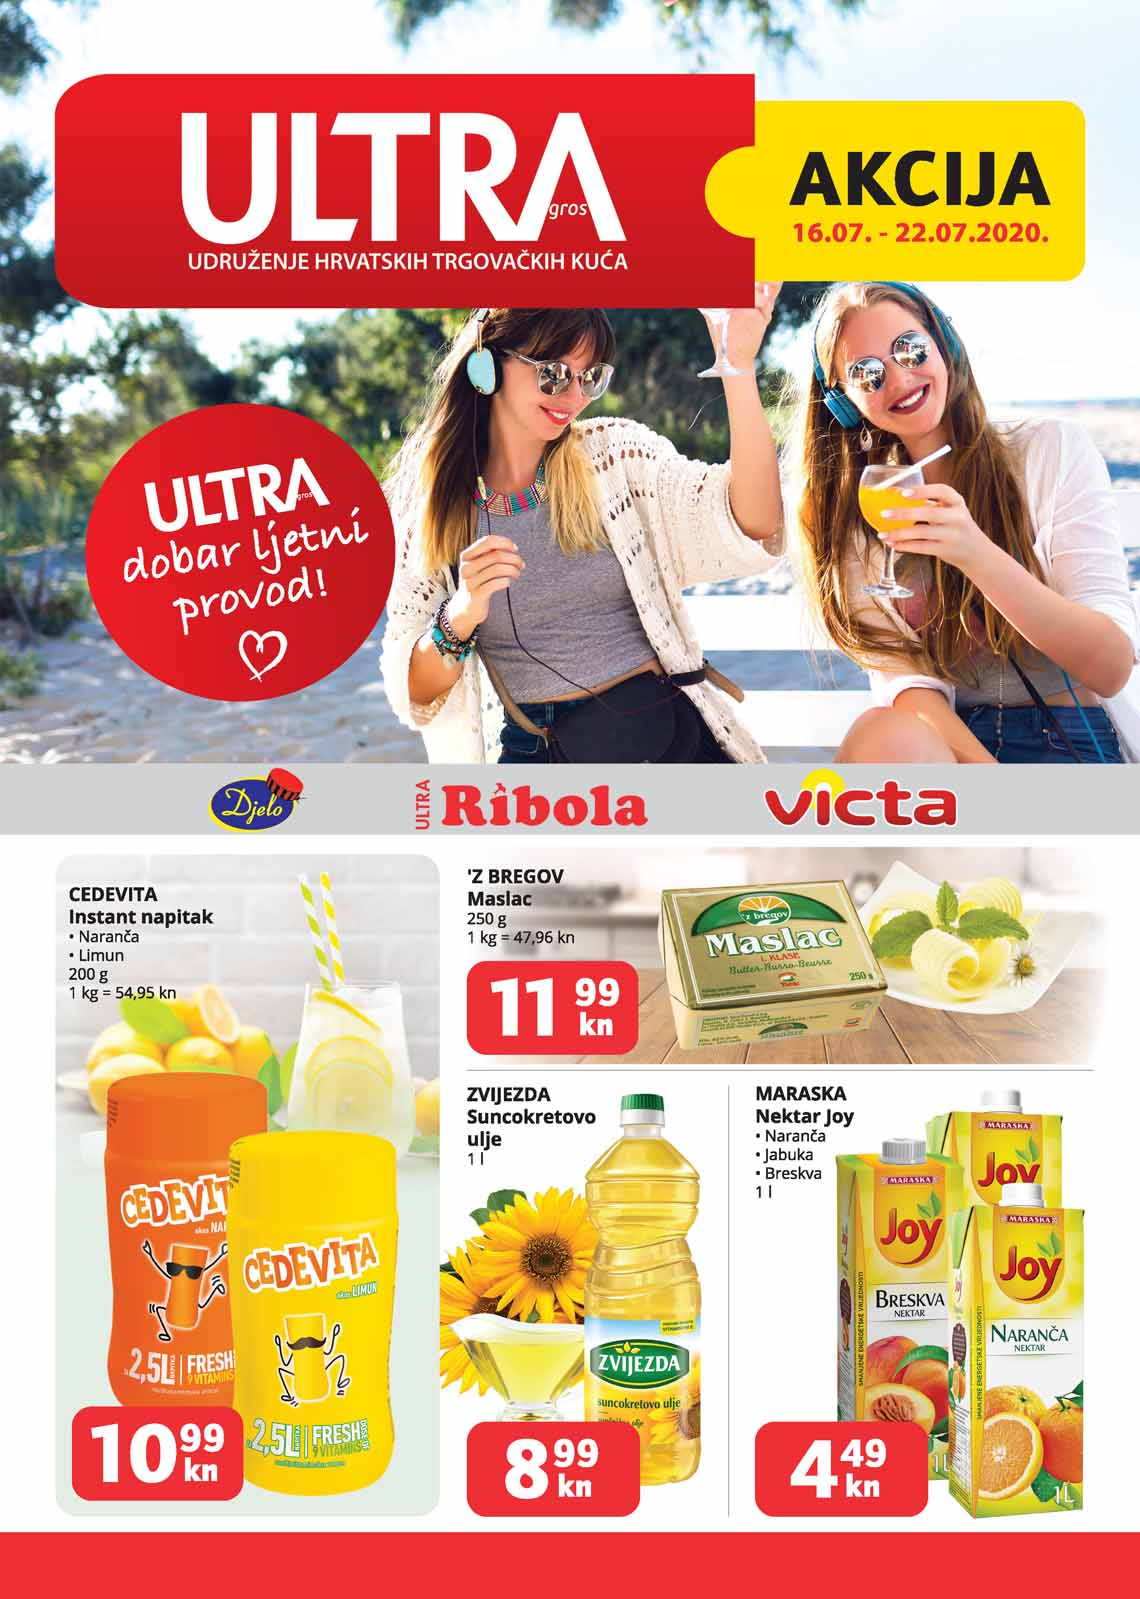 ULTRA GROS  - RIBOLA  KATALOG  - Akcija do 22.07.2020.